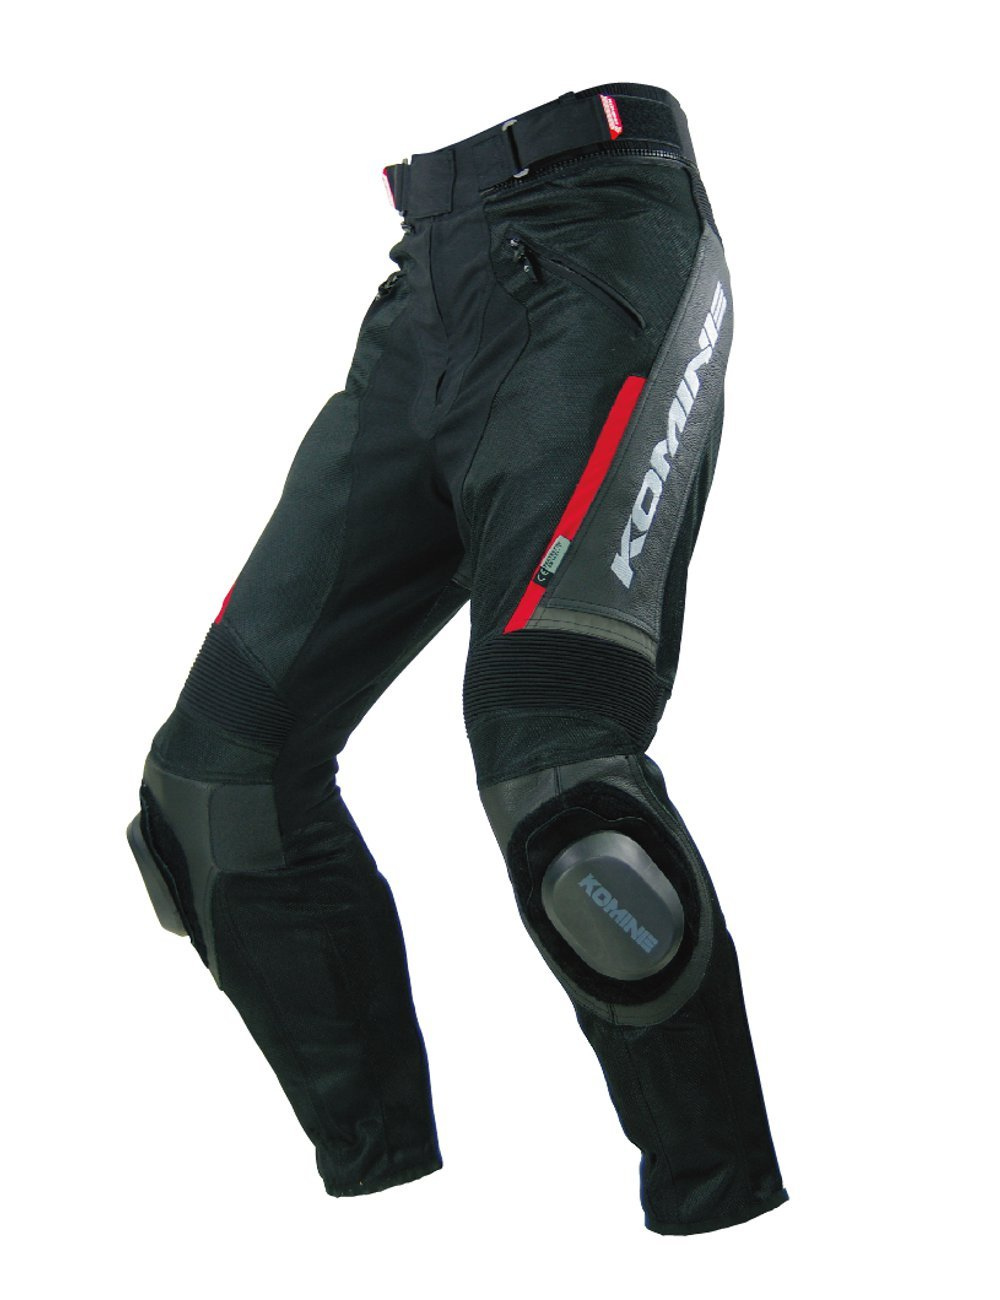 Komine PK-717 Sports Riding Leather M-PNT black L 07-717